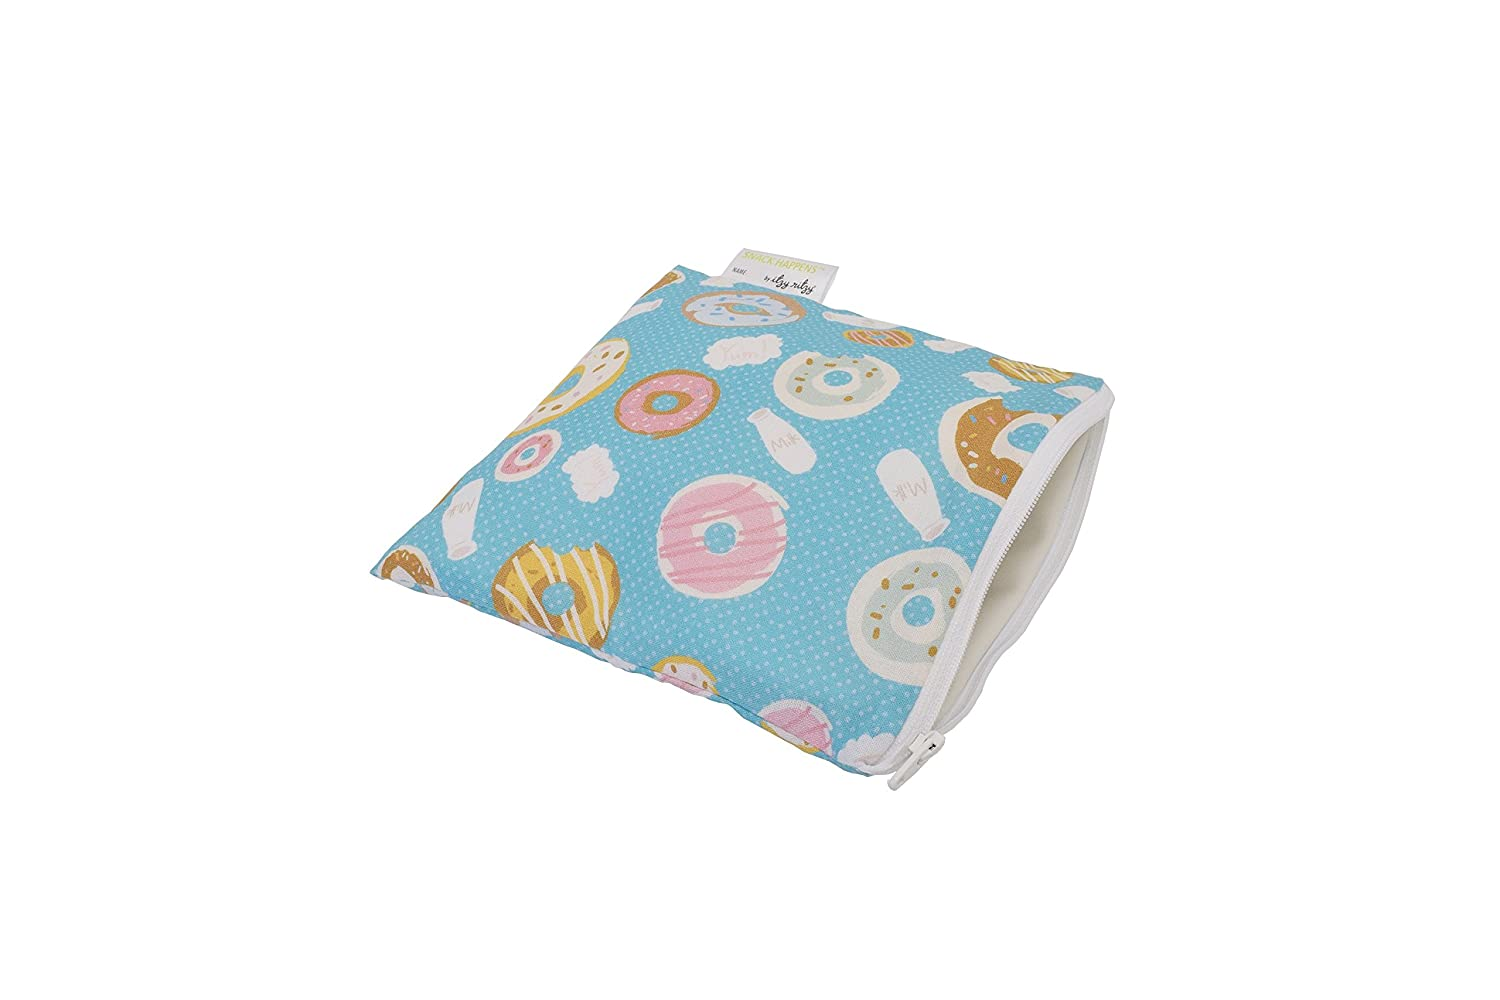 Itzy Ritzy IR-SWB8300 Snack Happens Reusable Snack and Everything Bag, Donut Shop